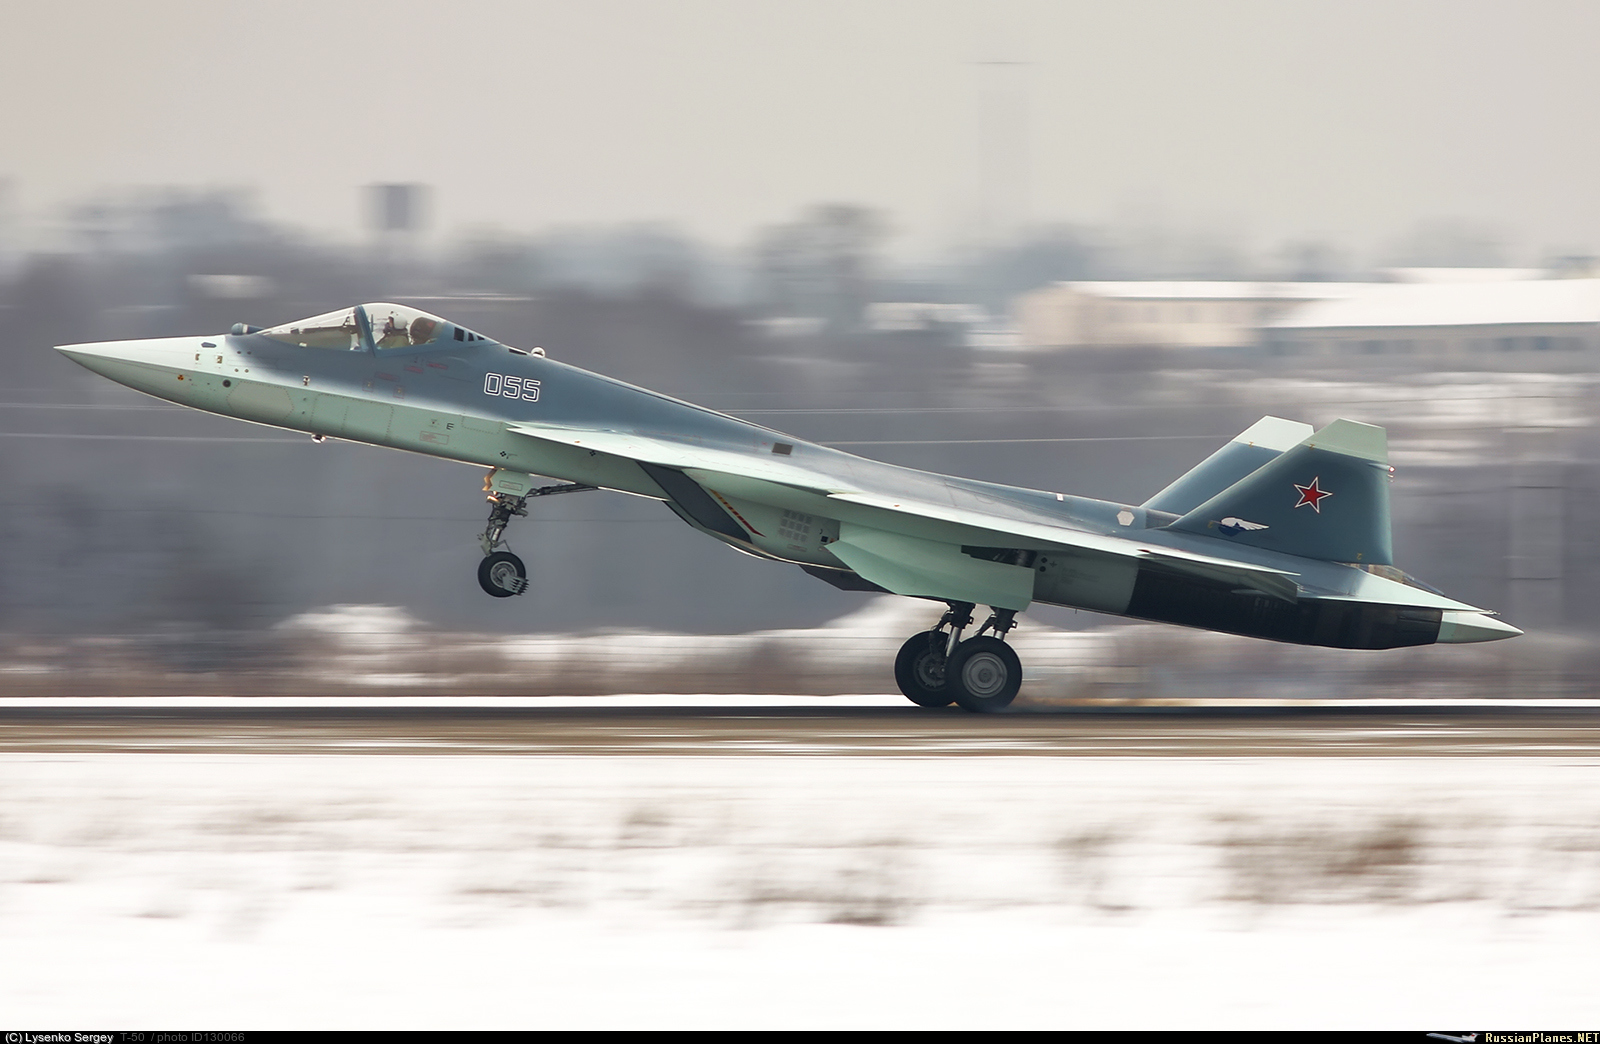 http://russianplanes.net/images/to131000/130066.jpg